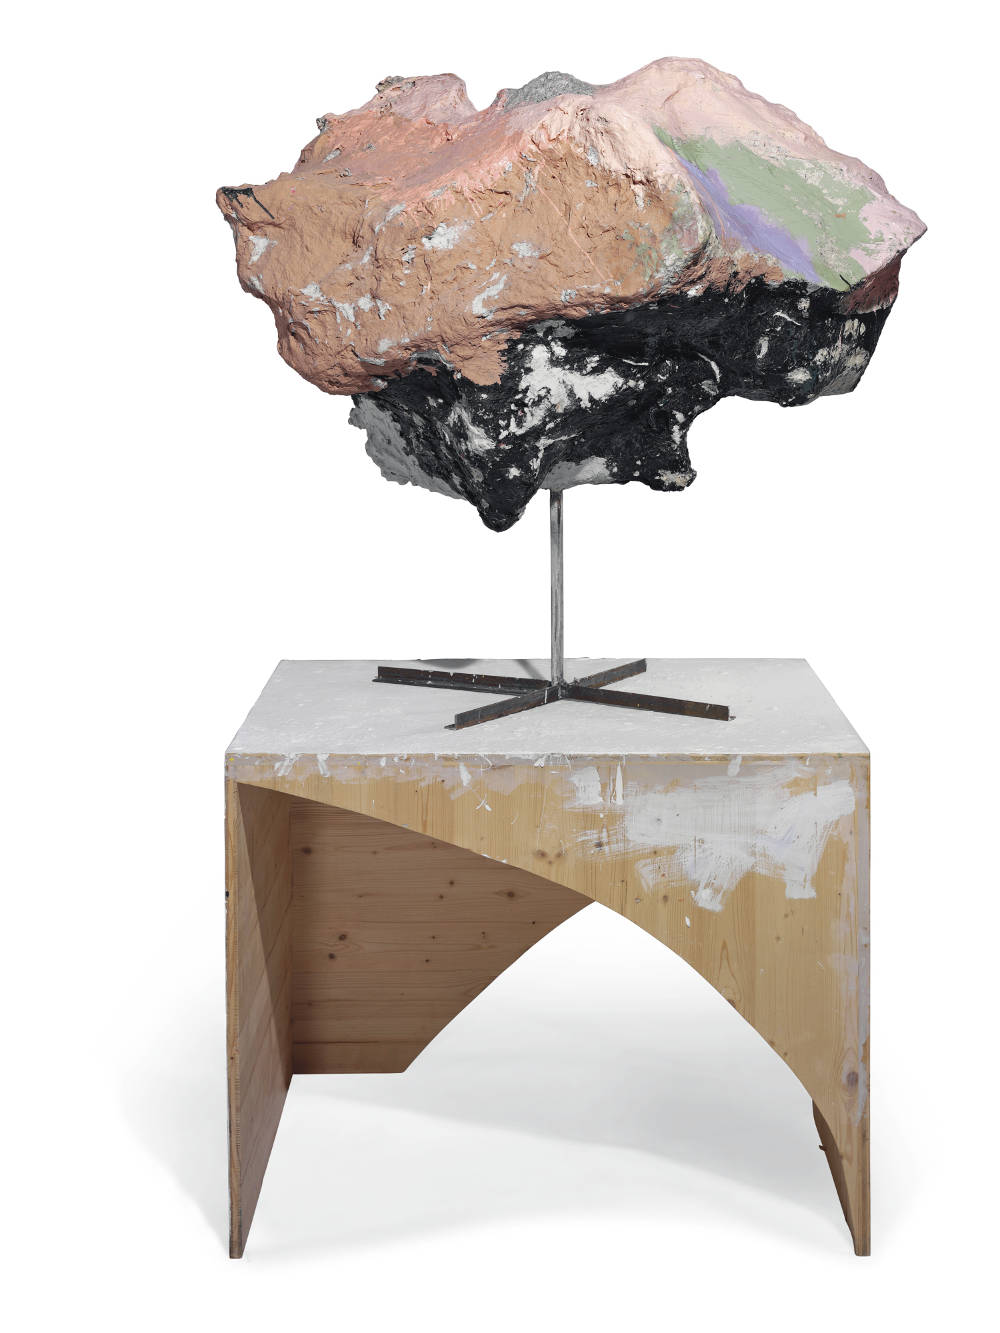 Franz West, Untitled, 2005. Lacquer and acrylic on papier-mâché, Styrofoam, cardboard and metal on acrylic and artist's wooden stand 109.8 by 116.8 by 90.2 cm (73 7/8 by 46 by 35 1/2 in.)